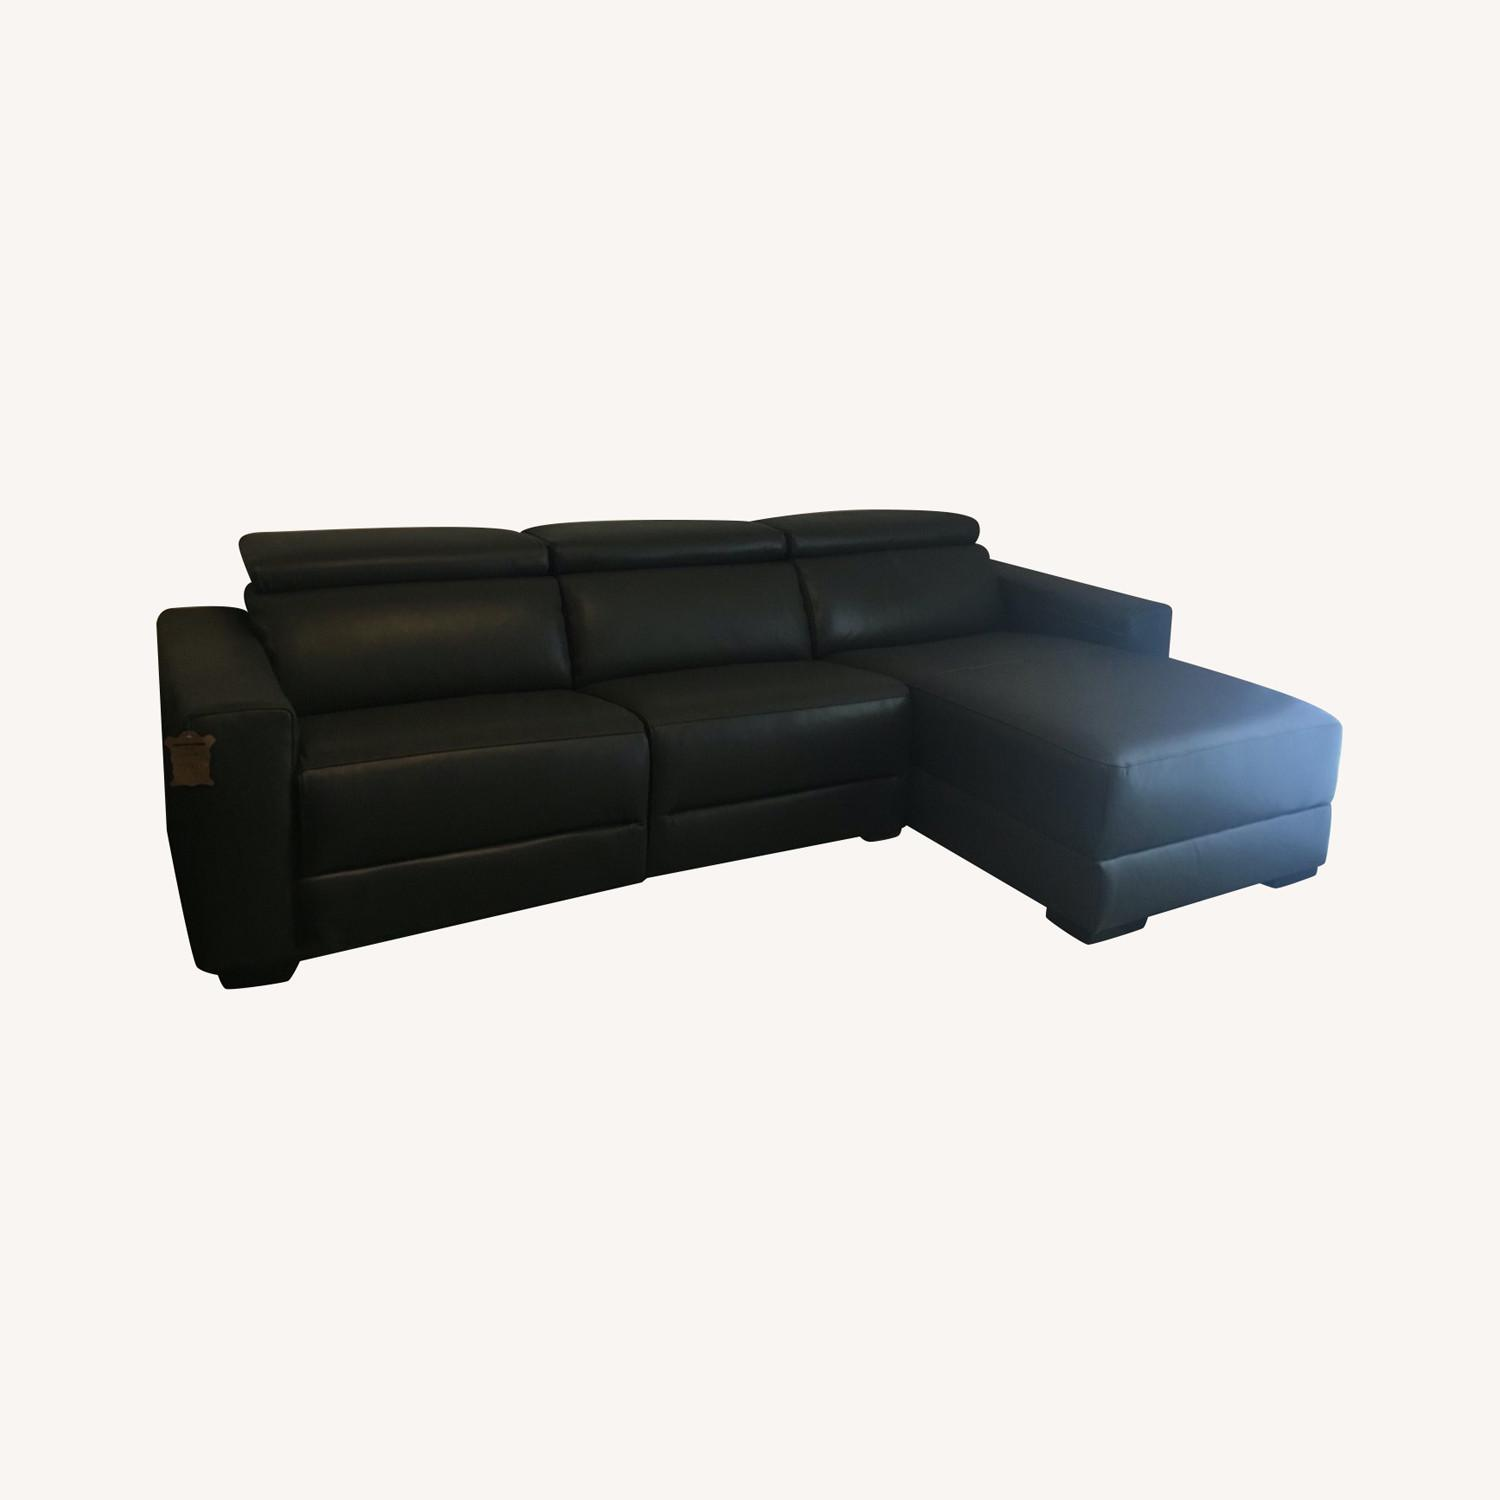 Macy's Nevio 3-pc Leather Sectional Sofa with Chaise - image-0